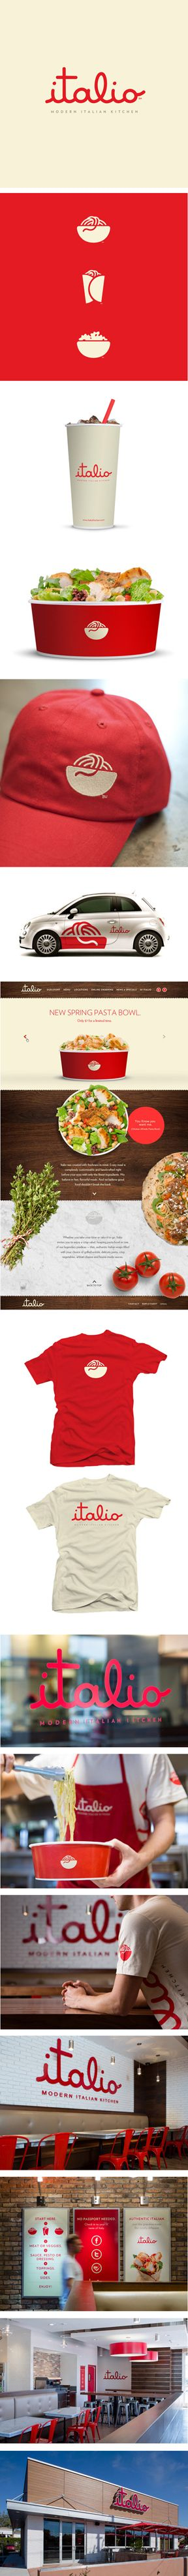 Italio Modern Kitchen Identity and Collateral by Push